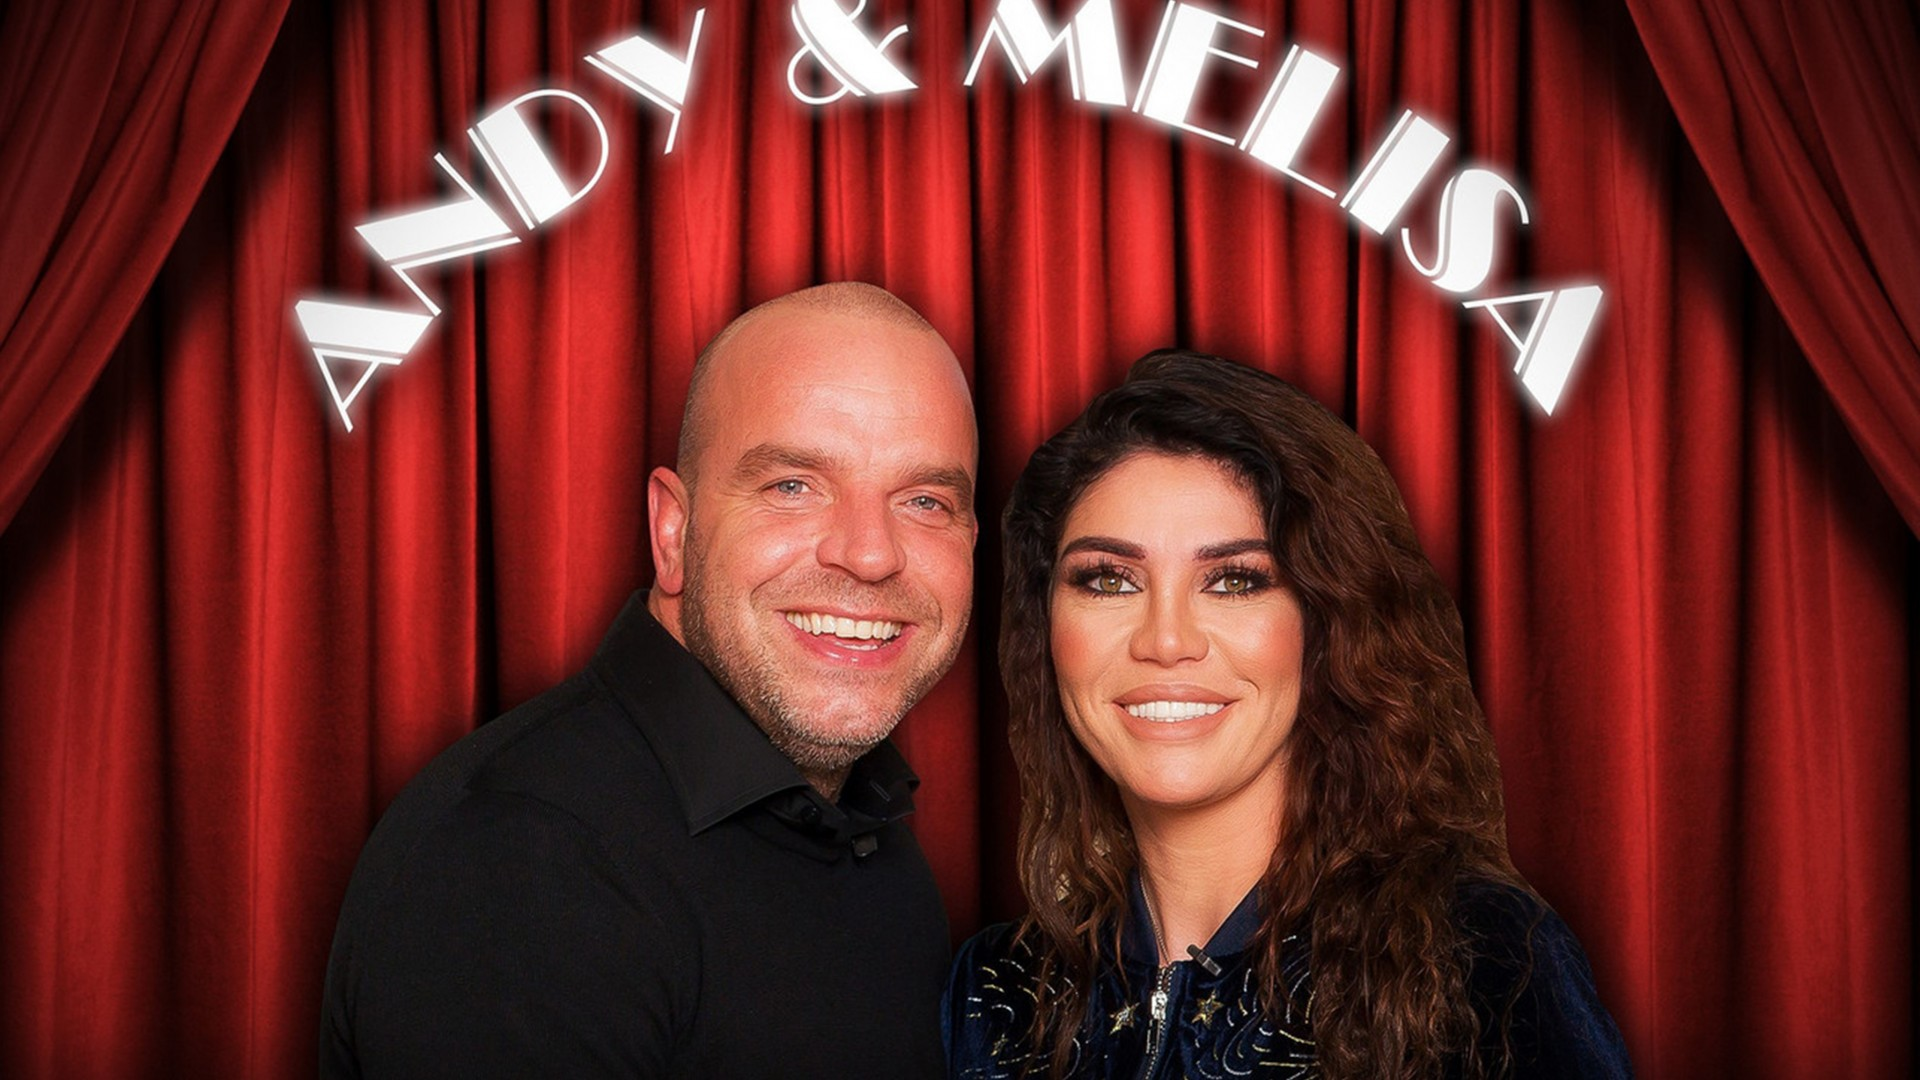 Andy & Melisa Elckerlyc